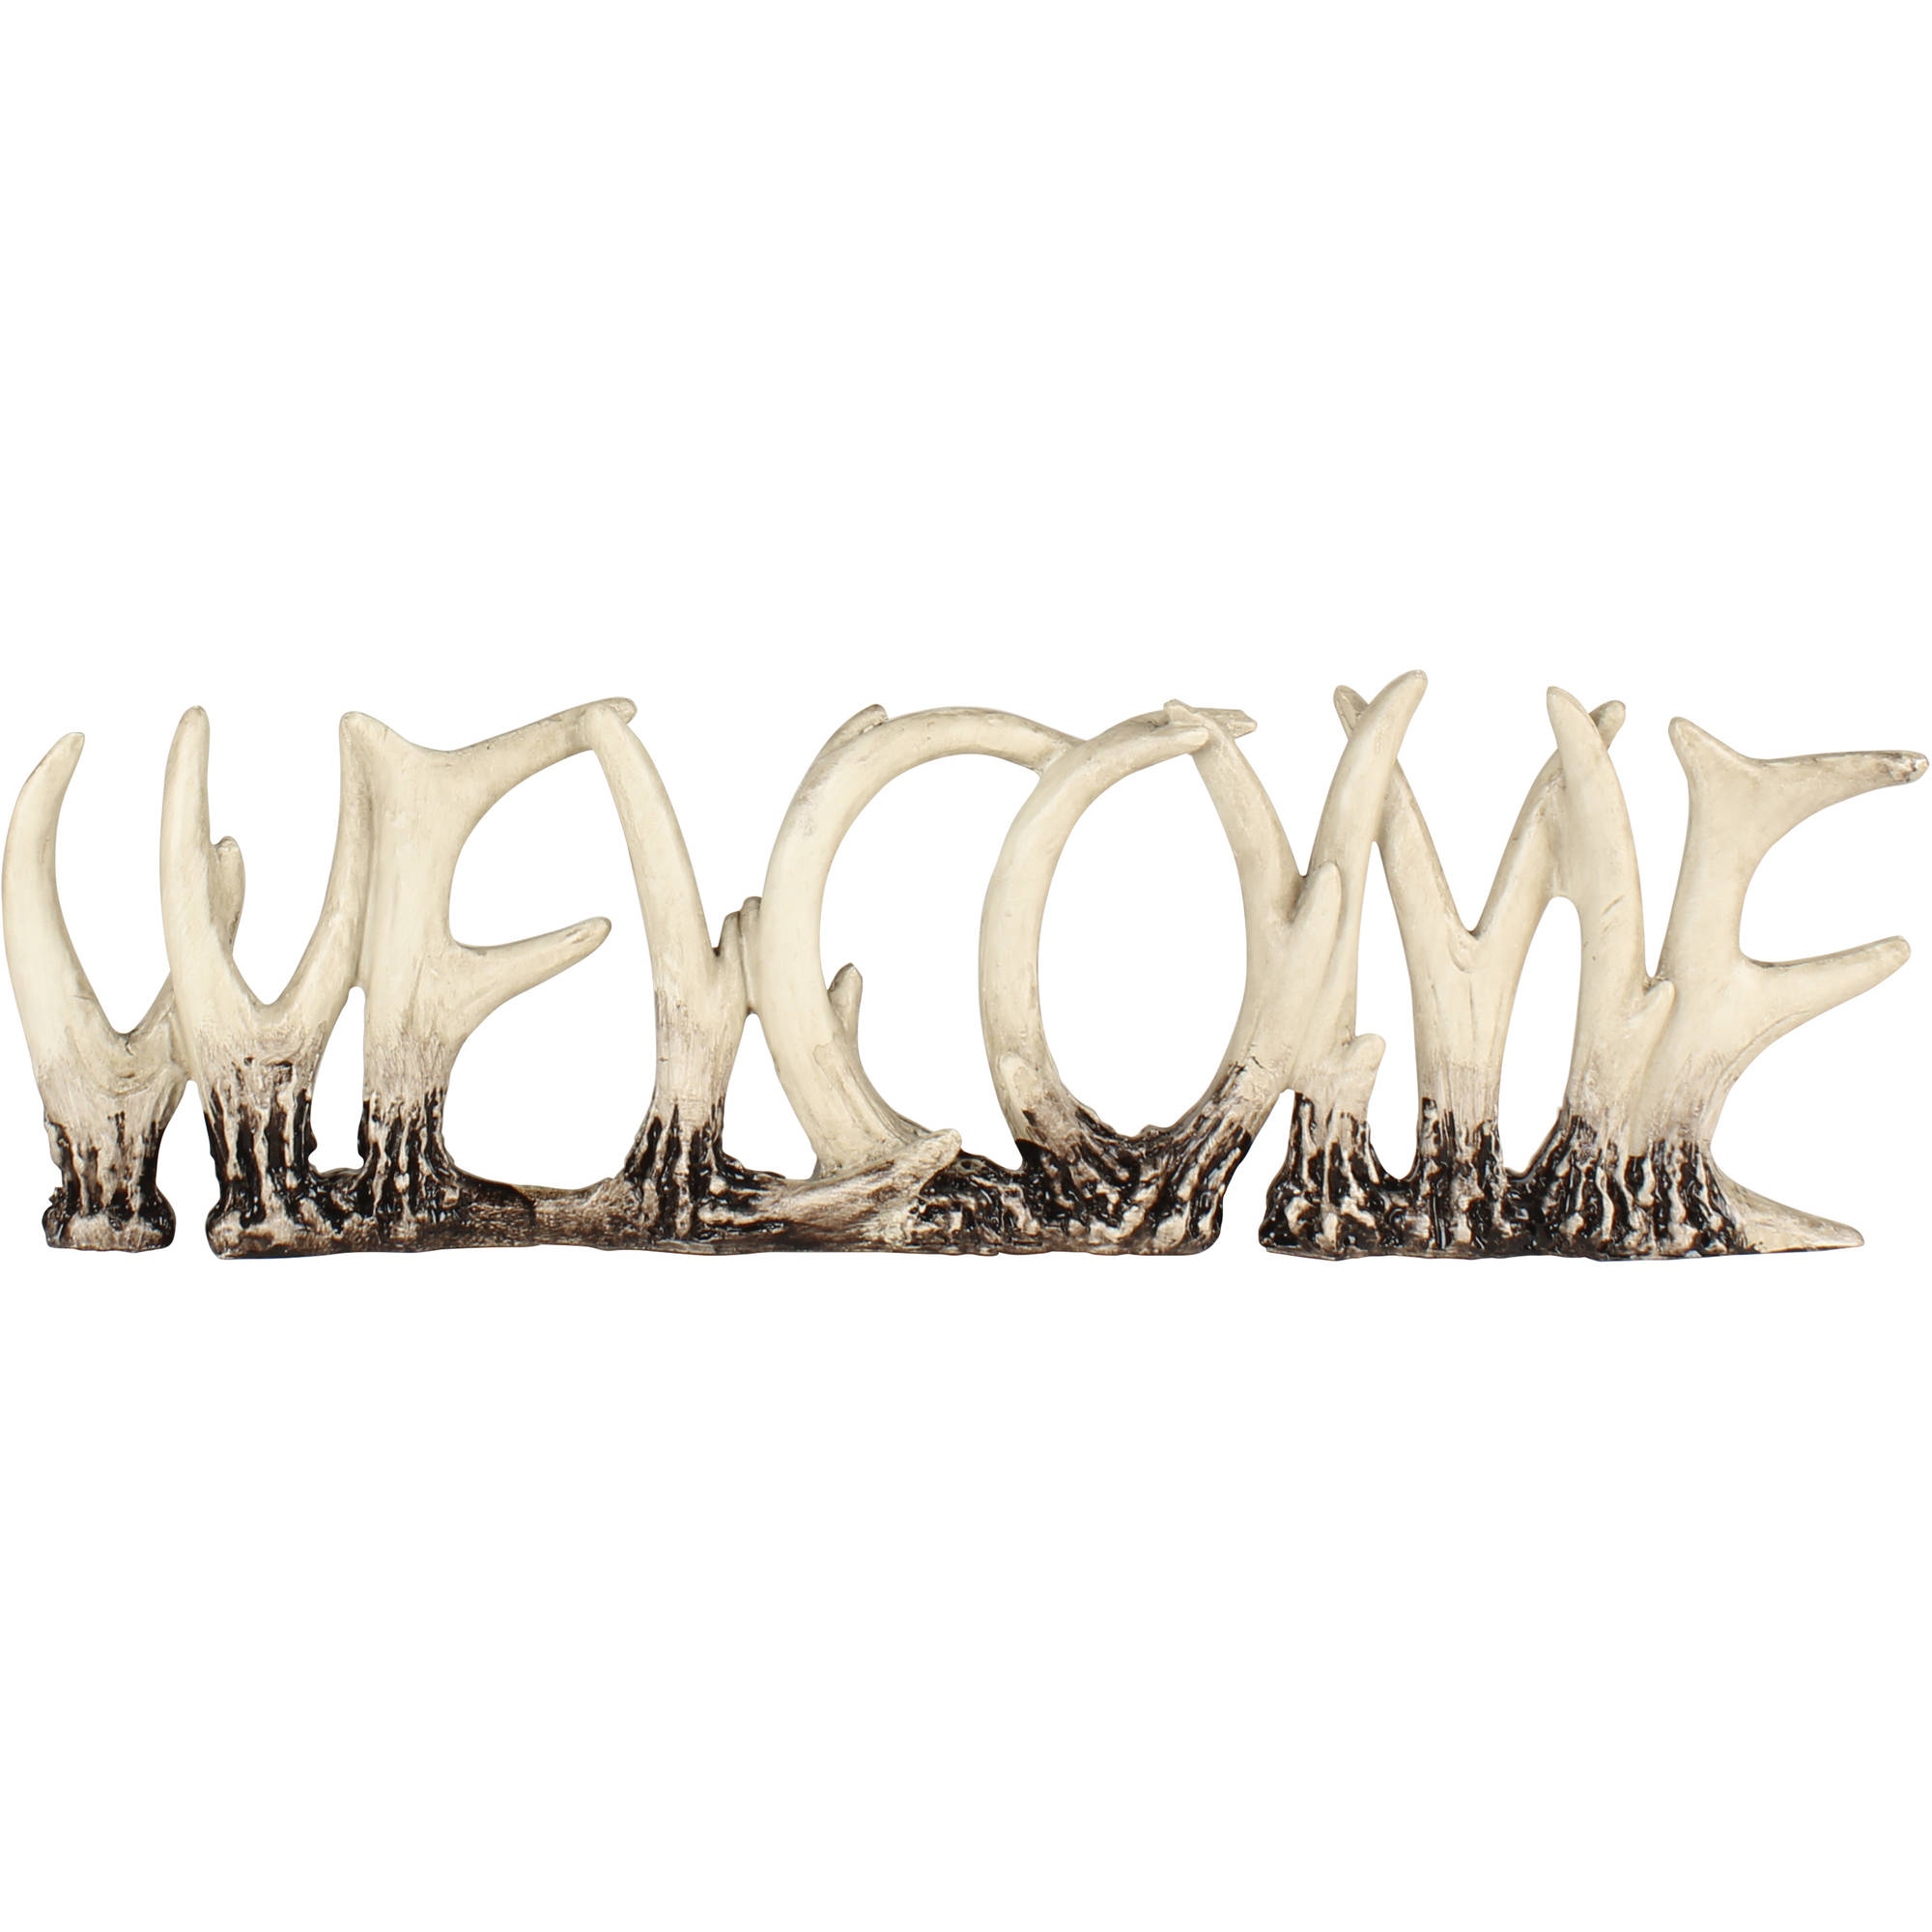 Tabletop Antlers Welcome Decor, Multicolored